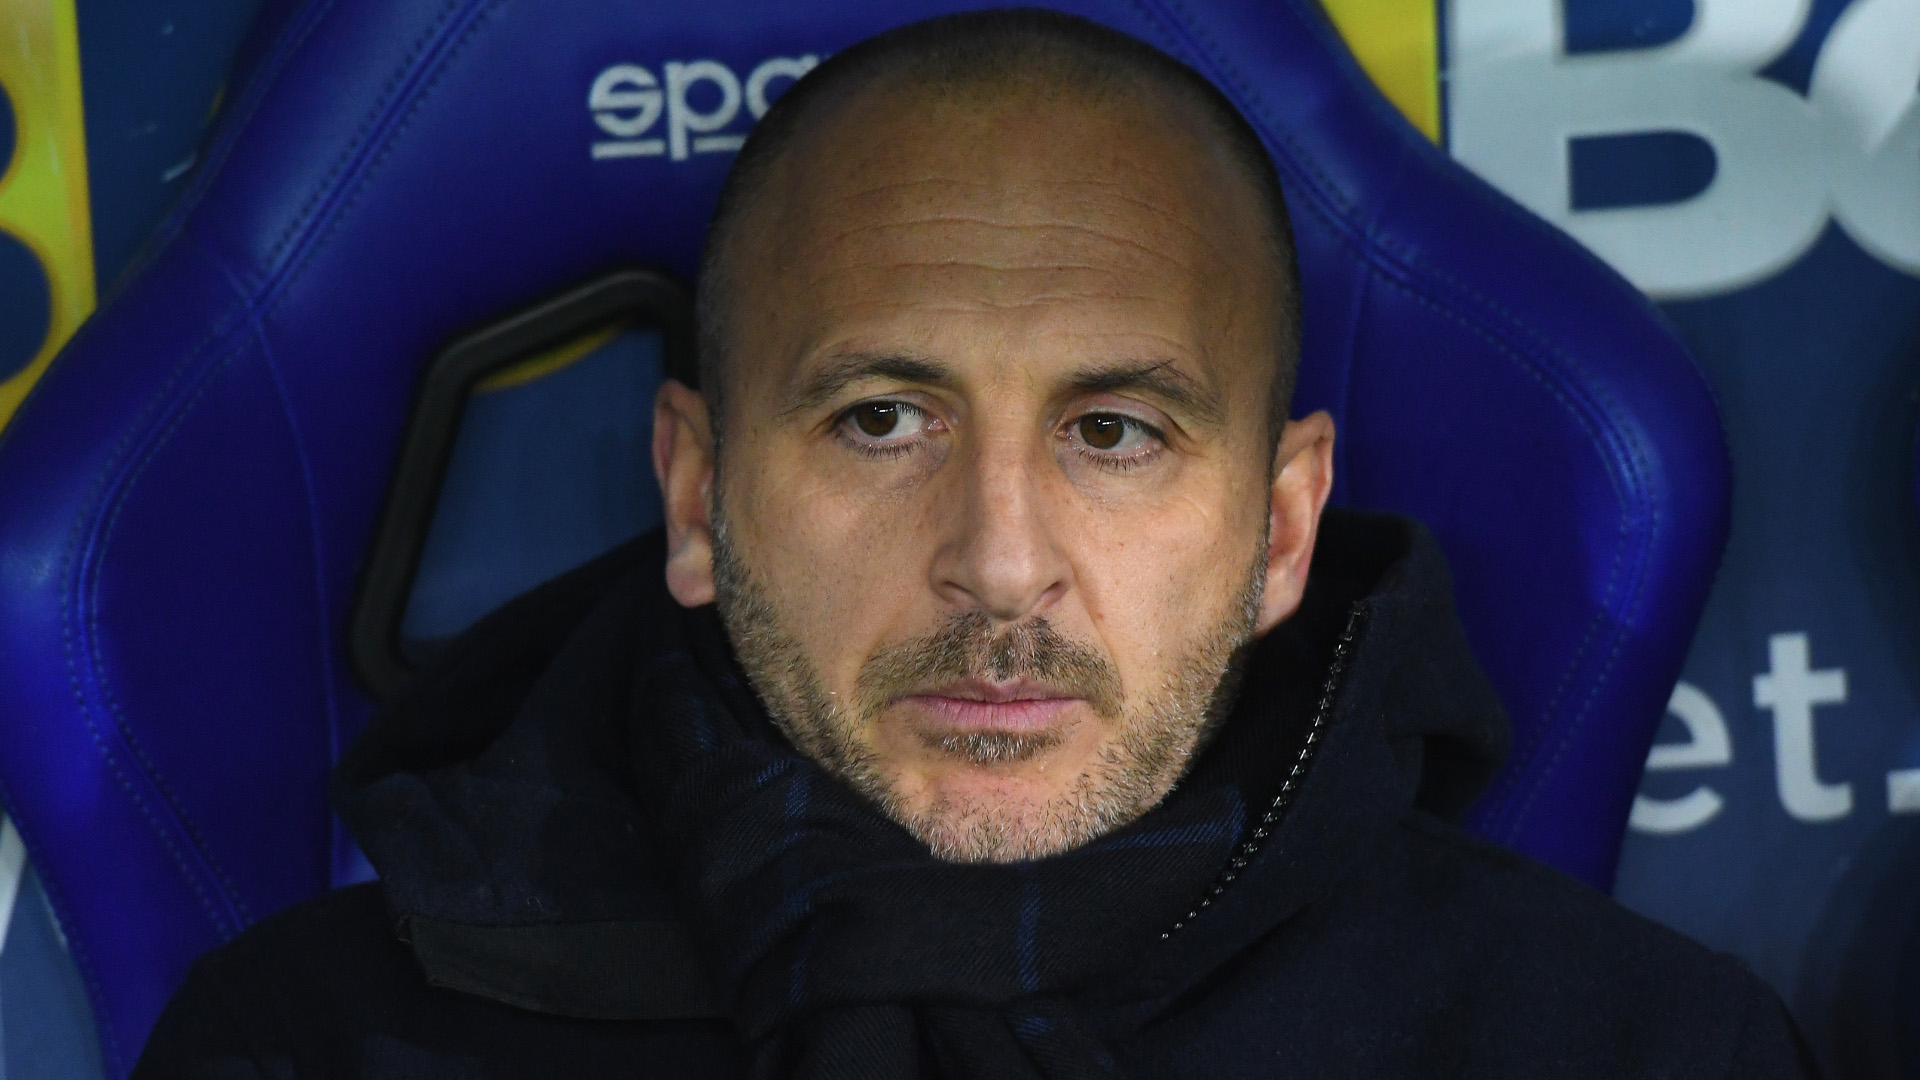 Serie A leaders Inter have revealed five members of staff, including sporting director Piero Ausilio, have tested positive for coronavirus.